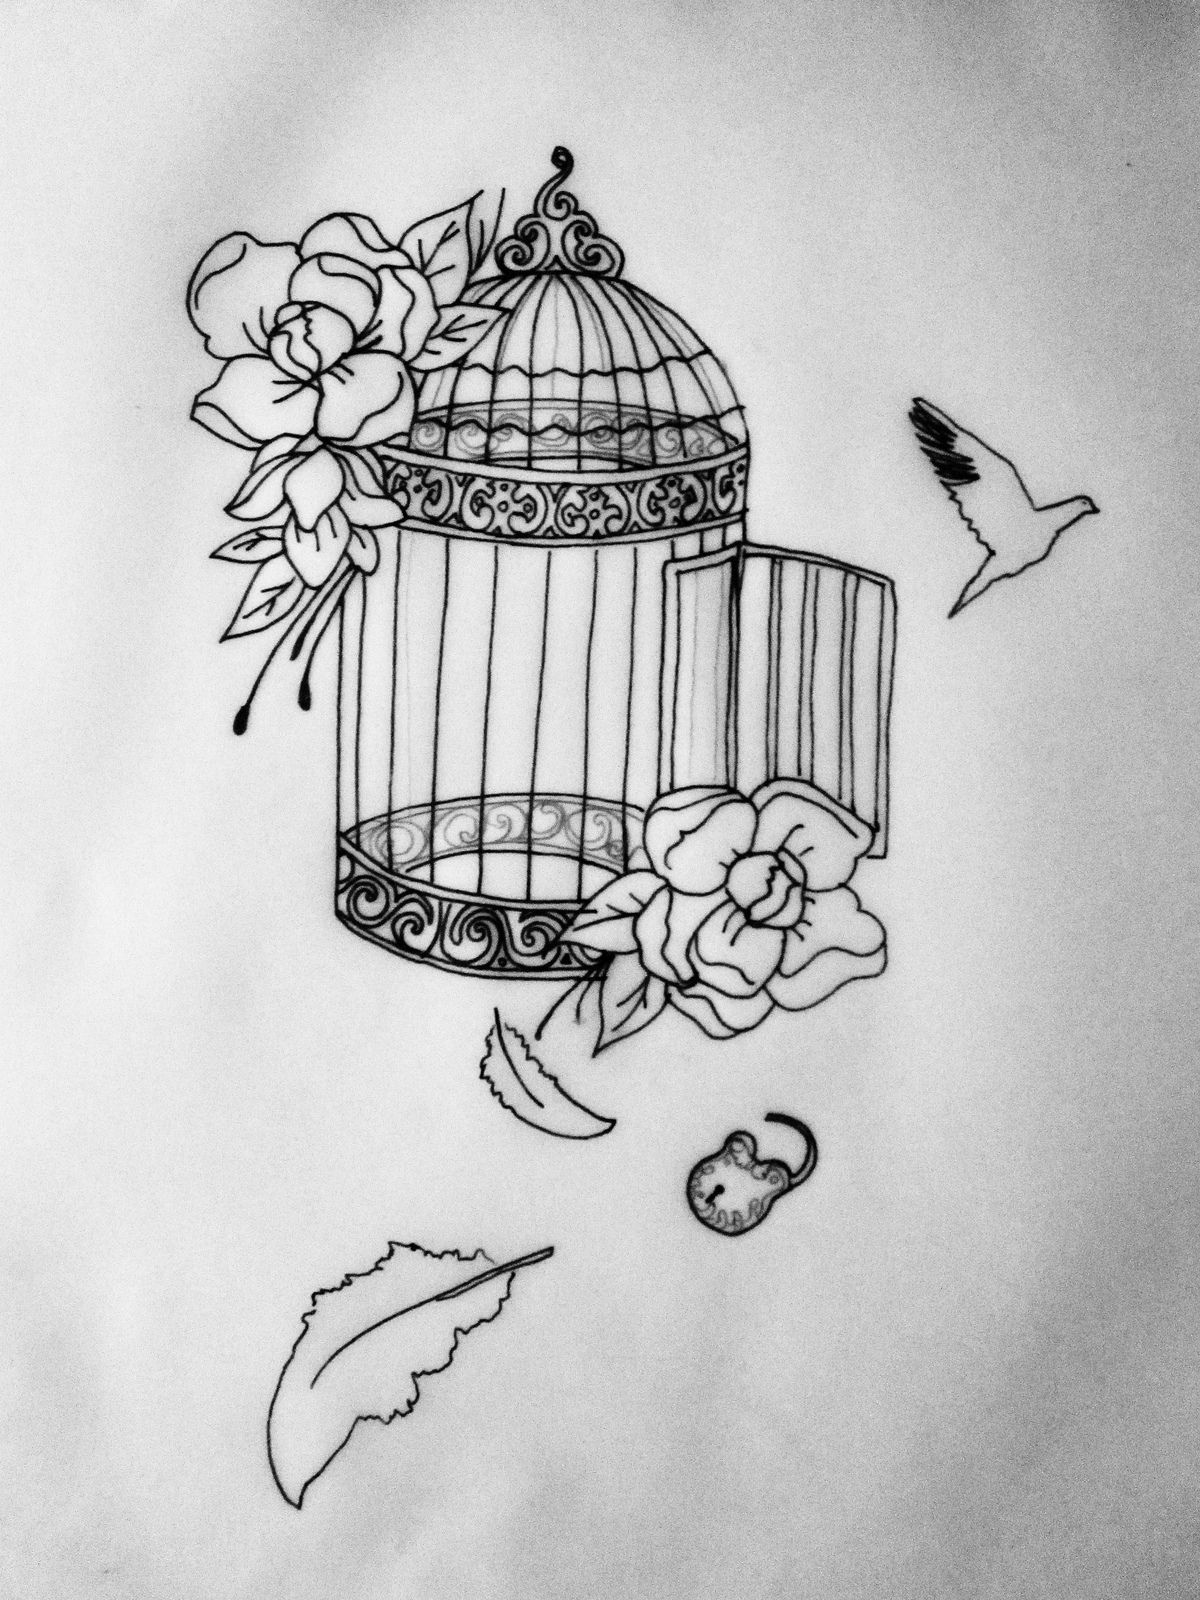 In Progress Cage Tattoo Commission Cage Tattoos Birdcage Tattoo Freedom Tattoos